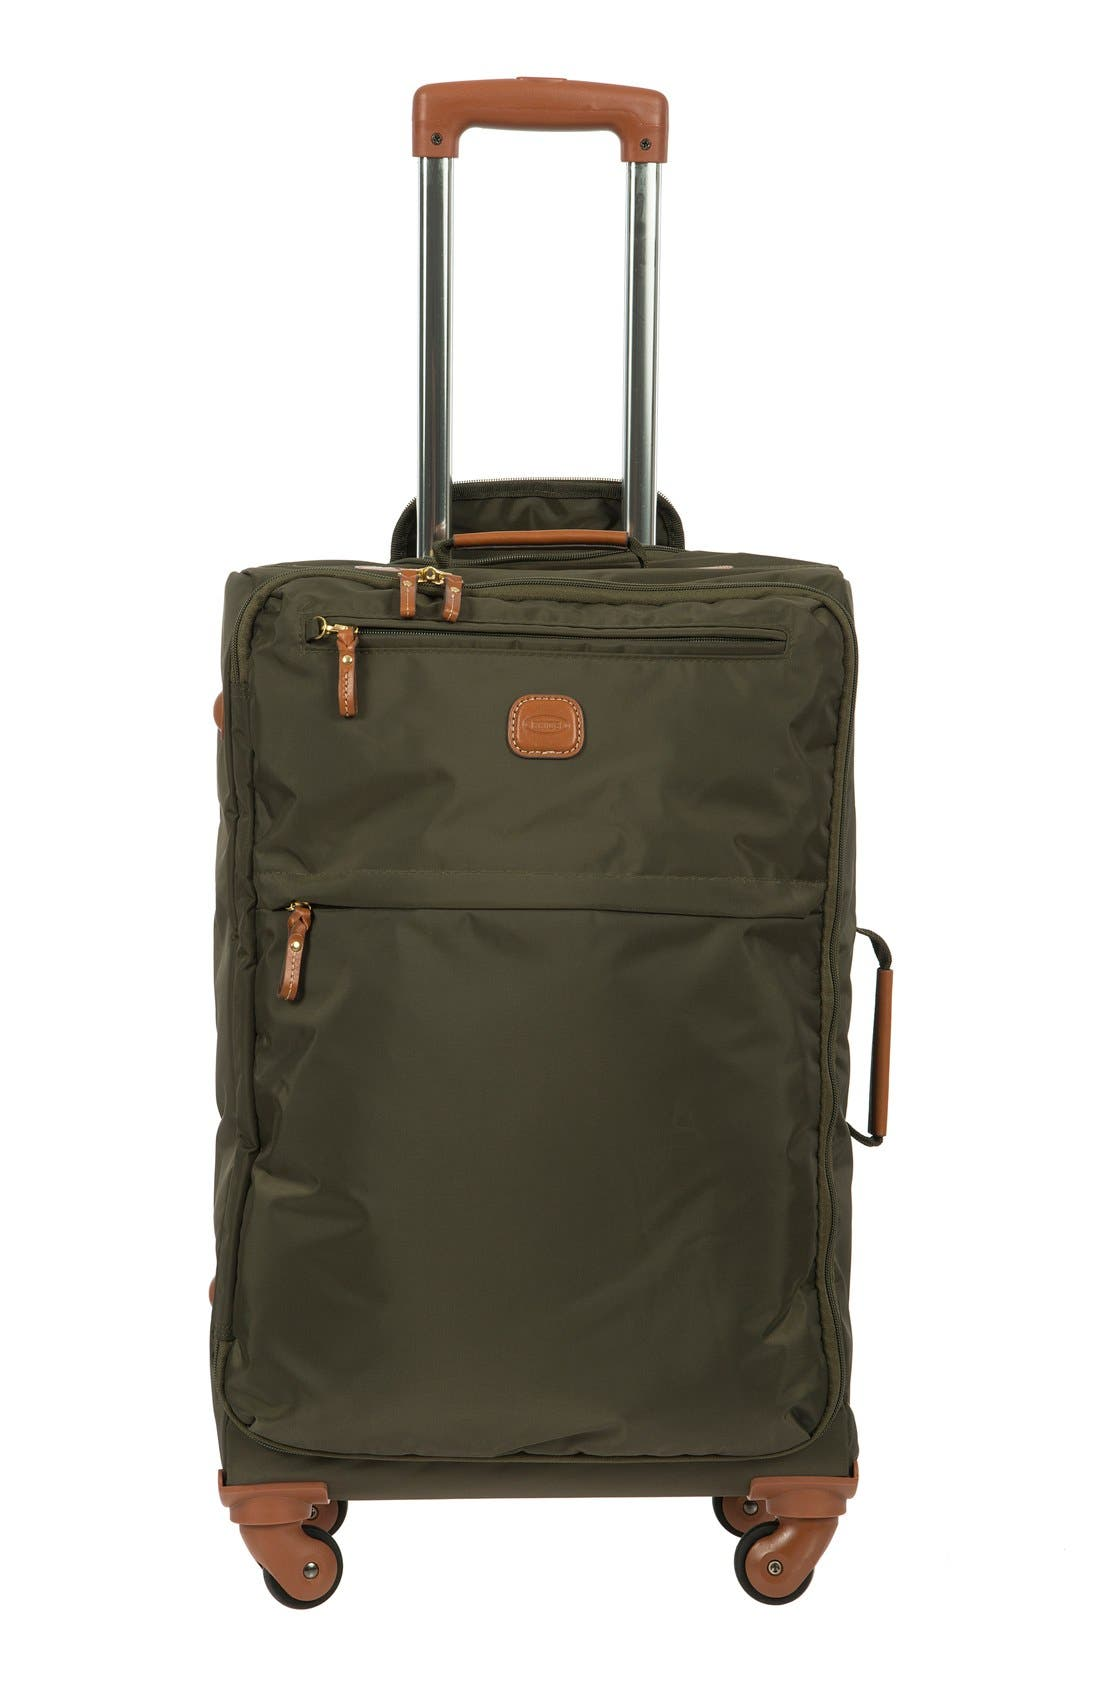 Main Image - Bric's X-Bag 25 Inch Spinner Suitcase